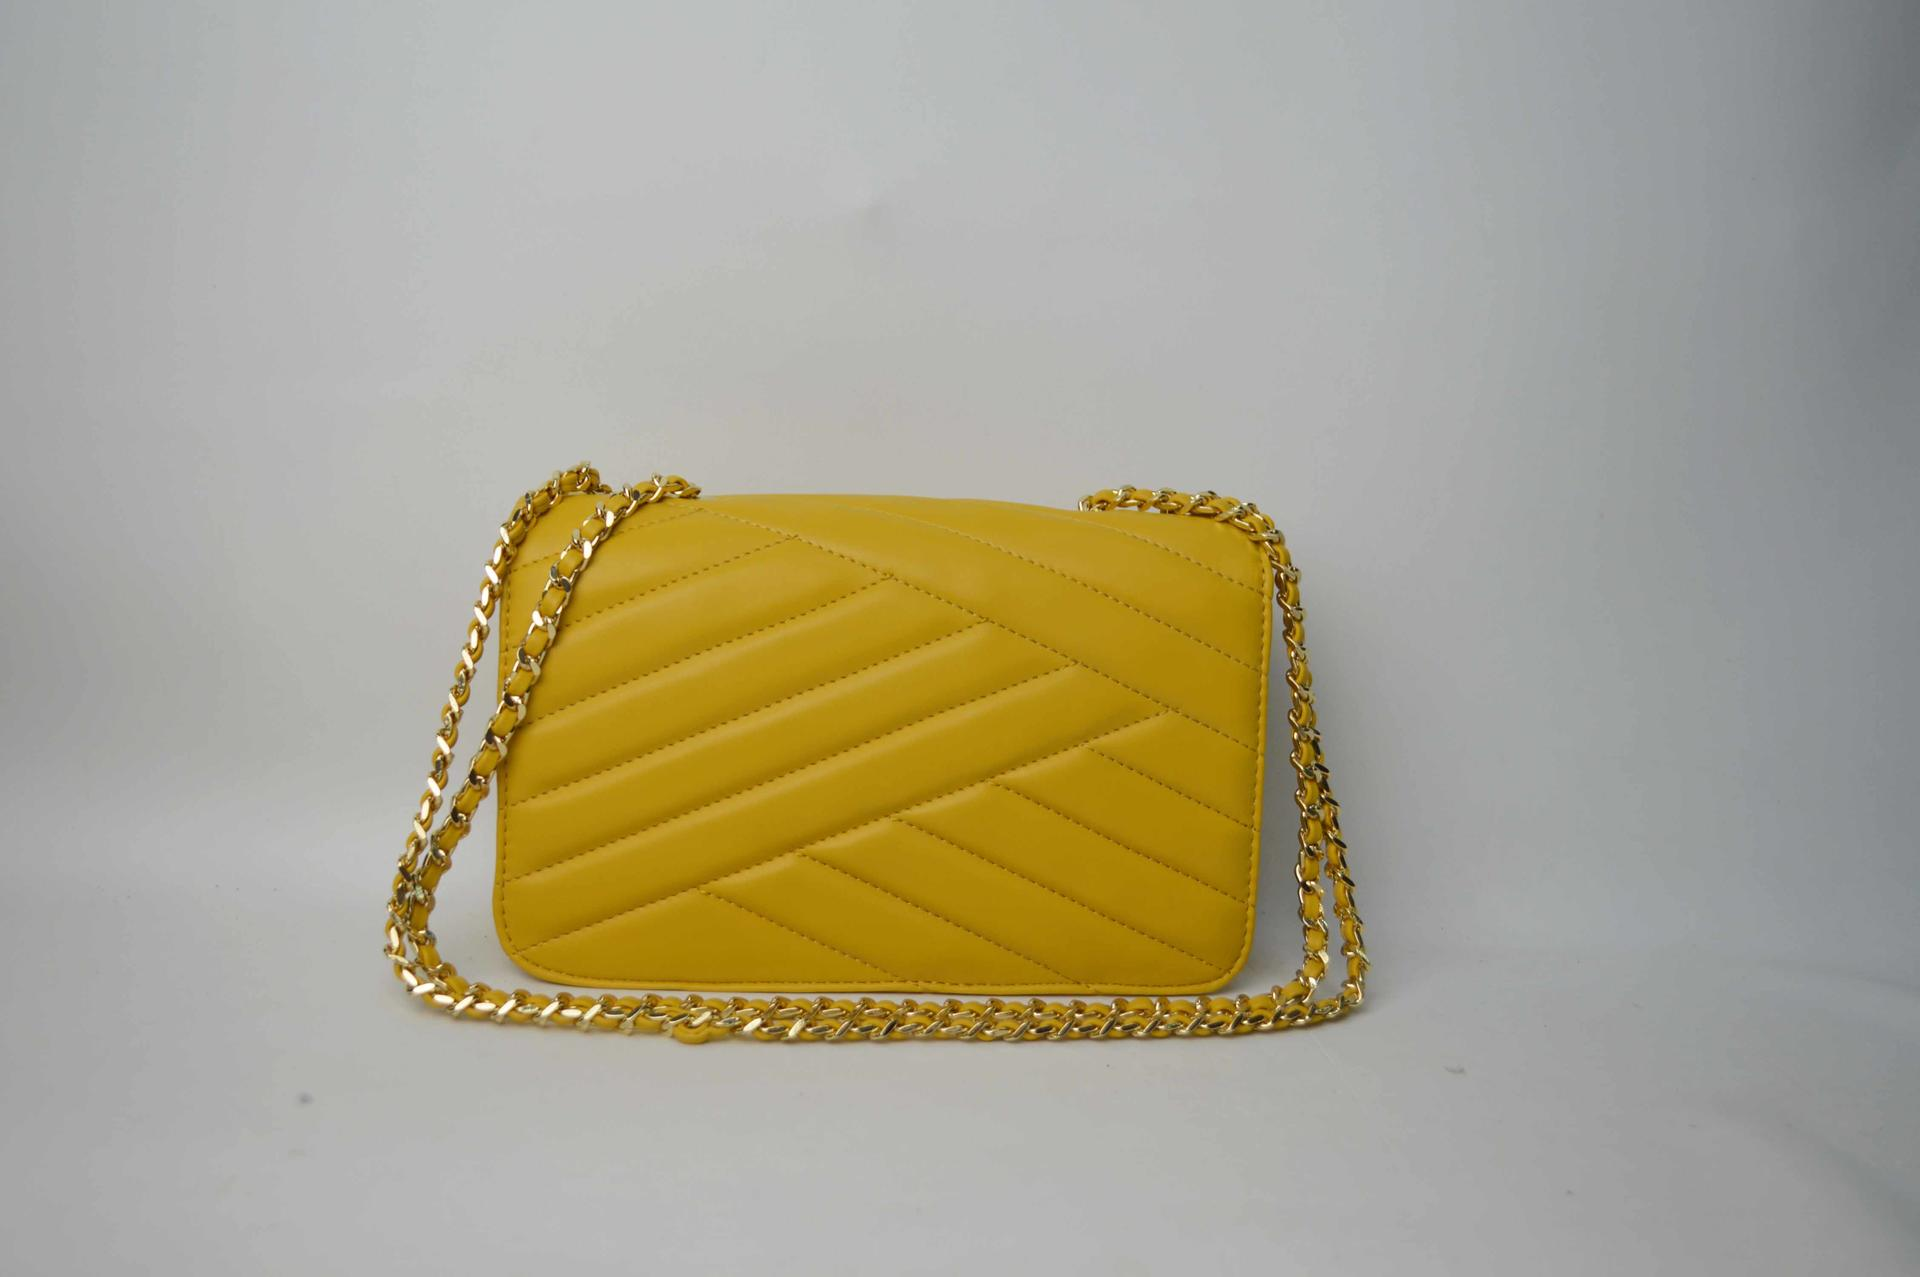 Yellow handbag with a special chain BE-4770